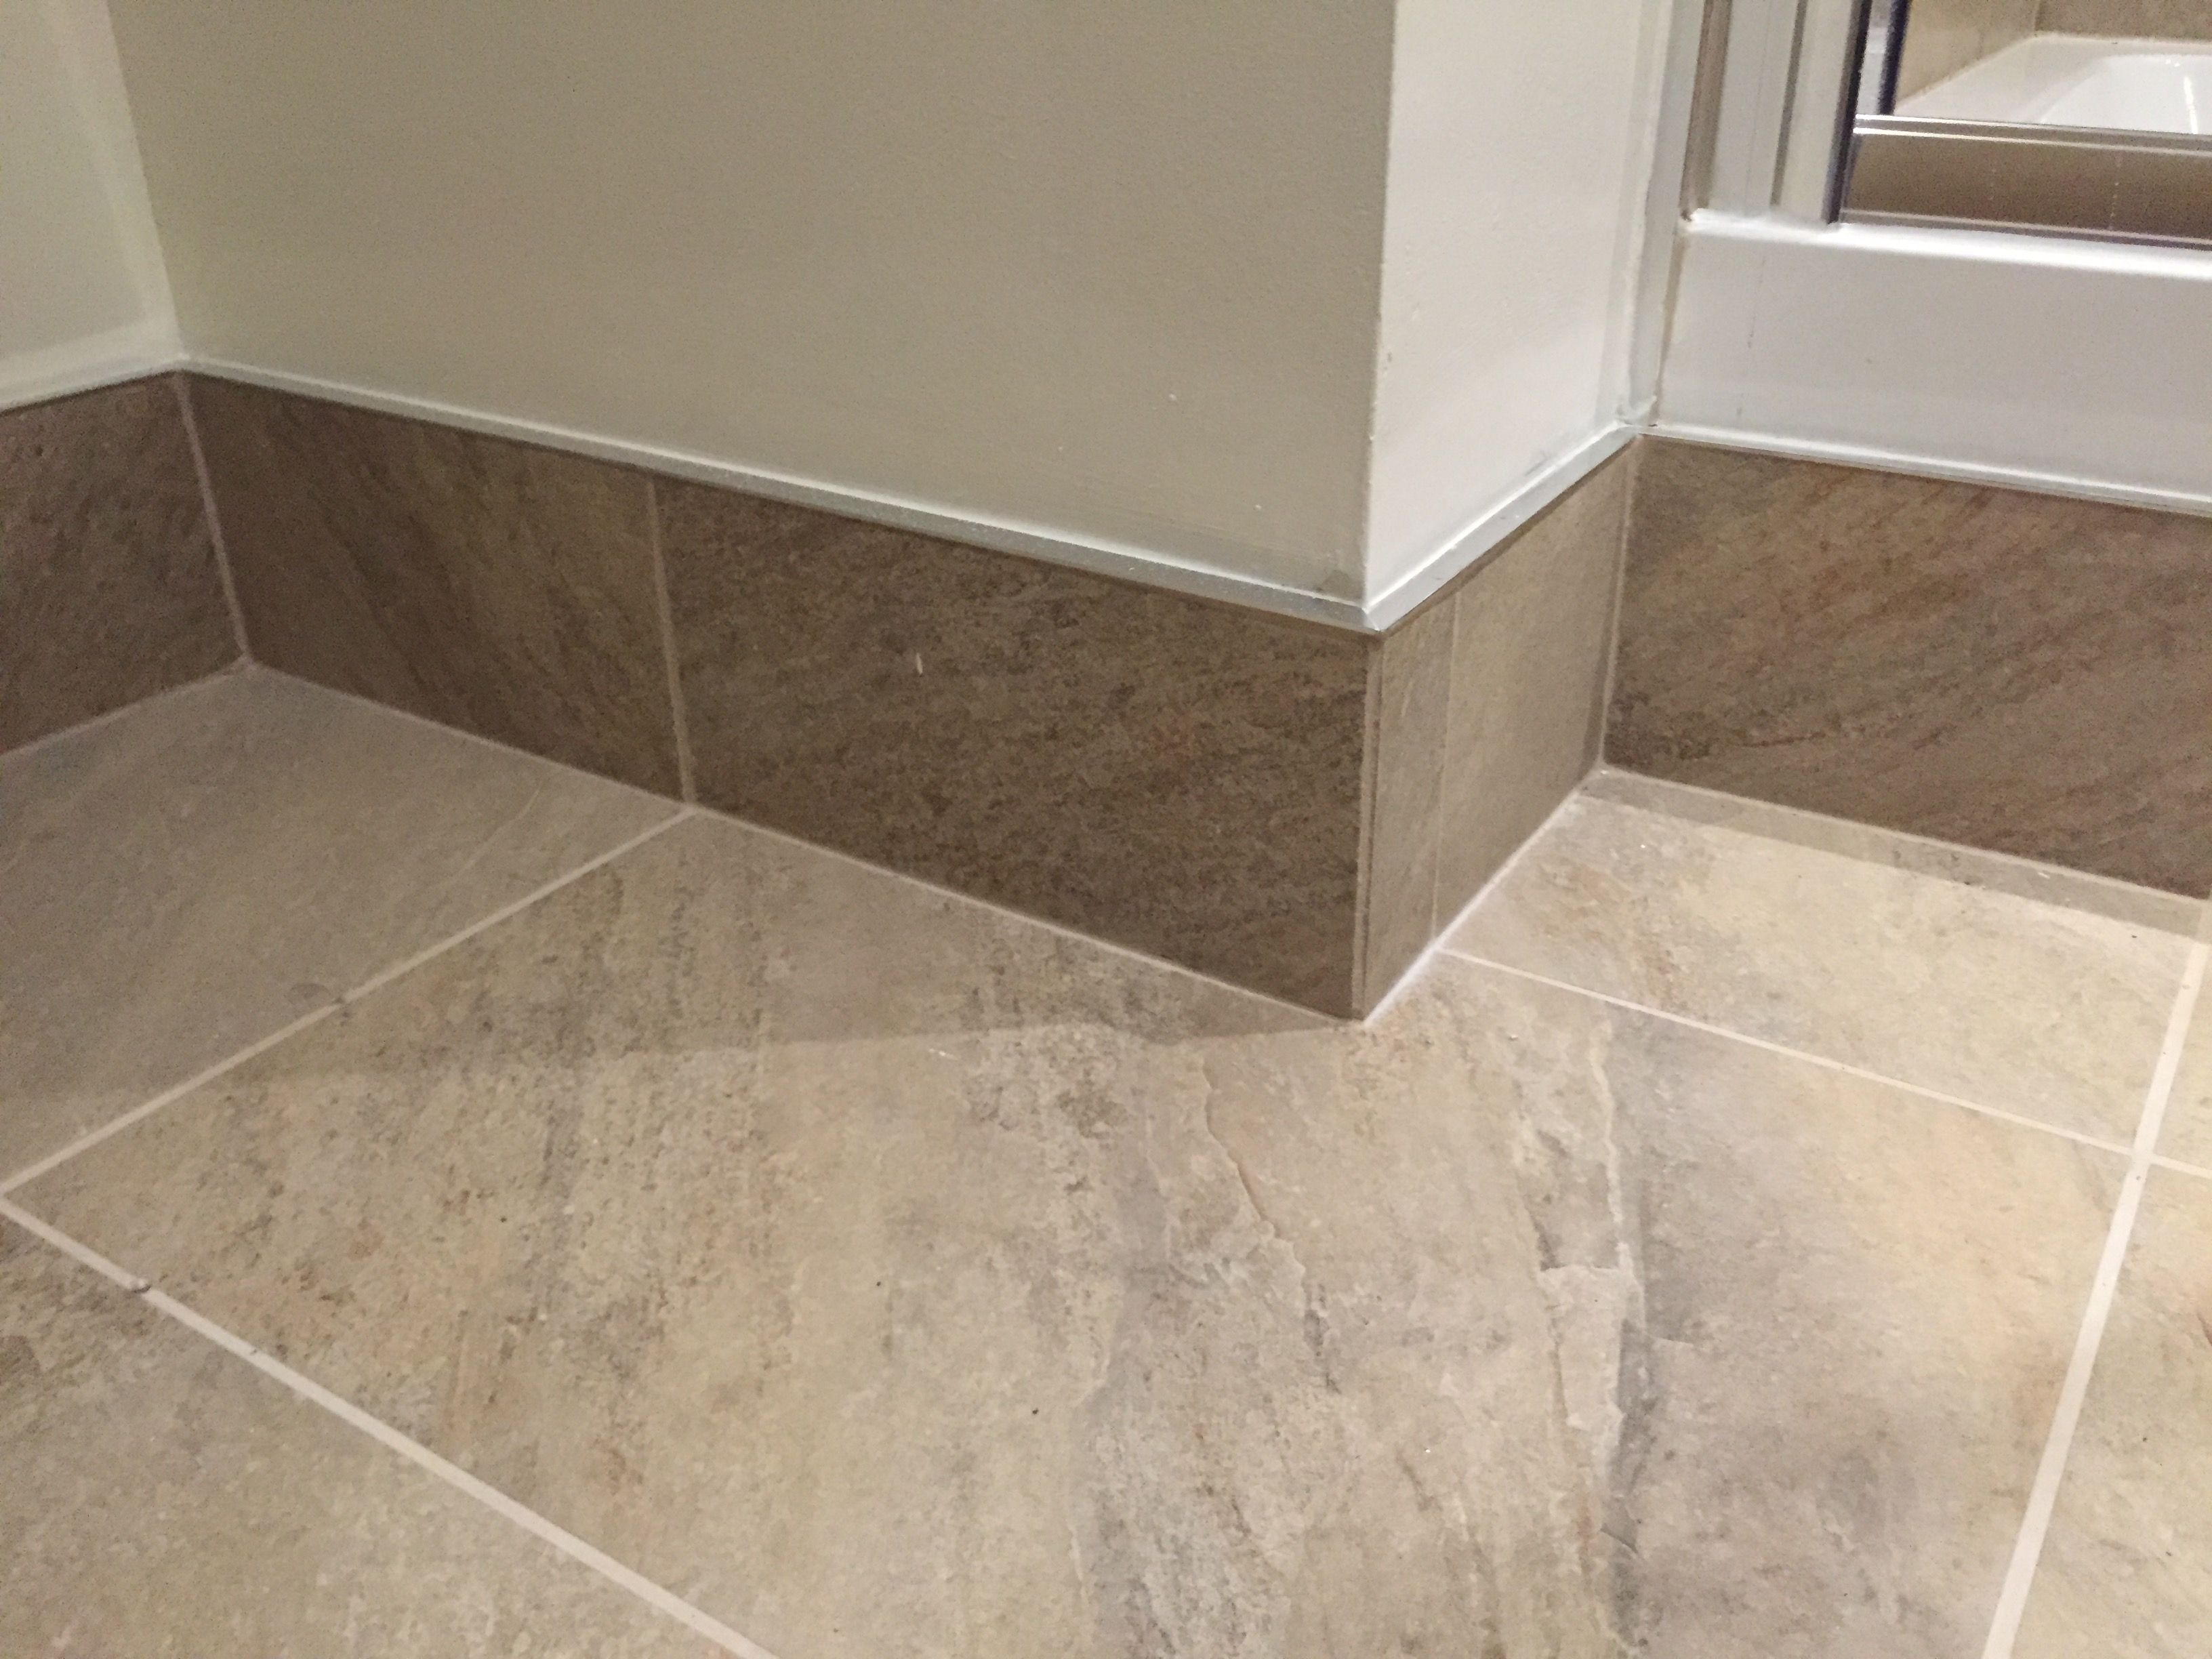 Tiled skirting board with chrome trim